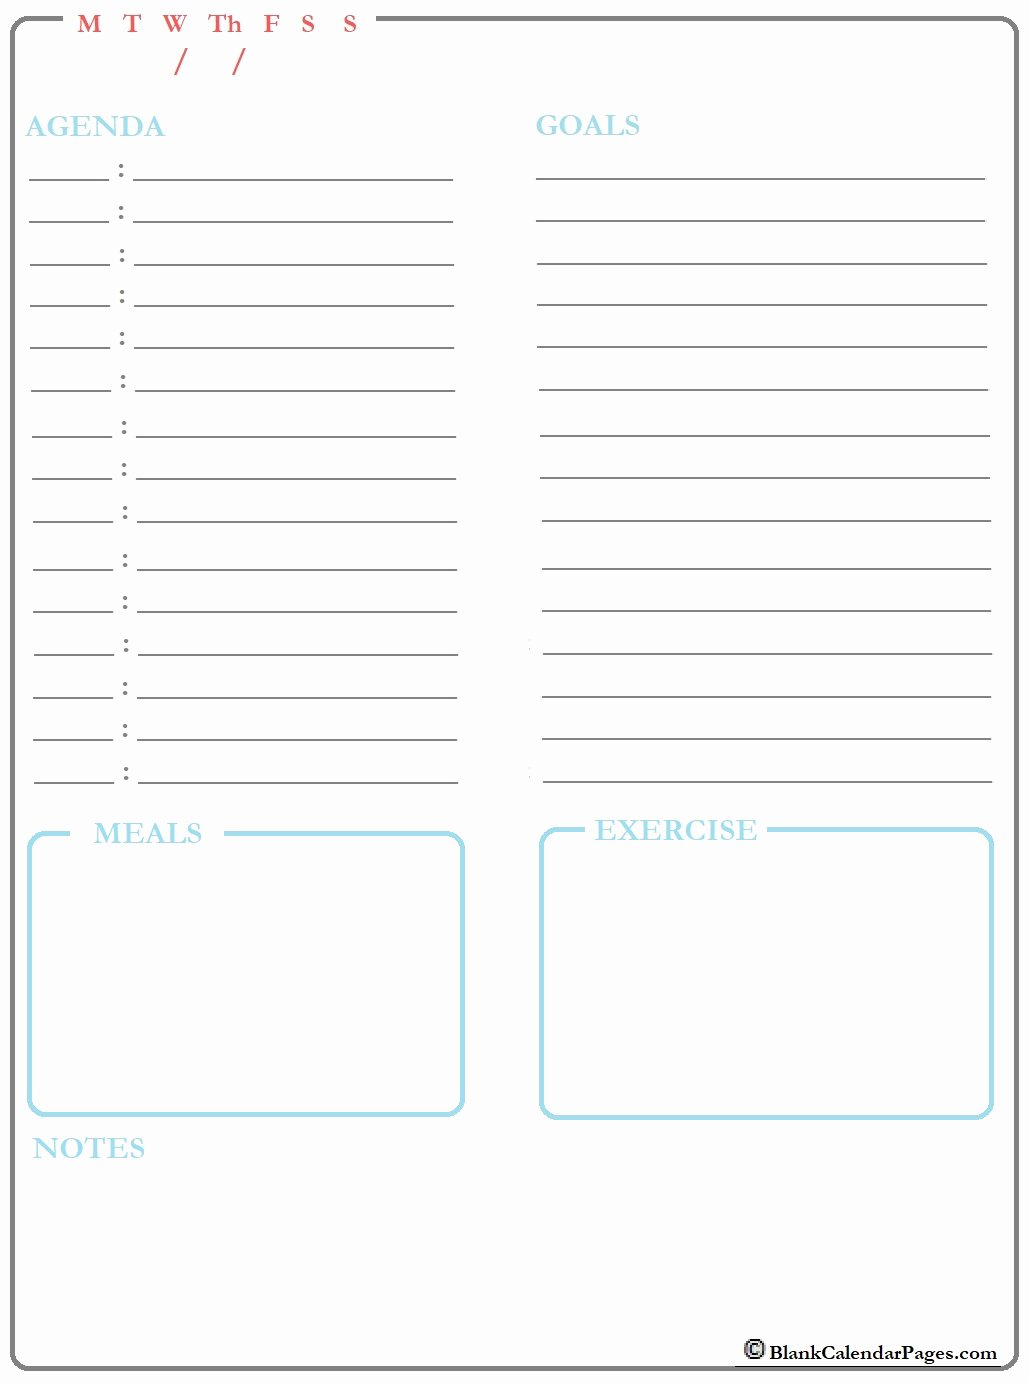 Printable Daily Planner 2019 Inspirational October 2019 Daily Calendar Template October 2019 Daily